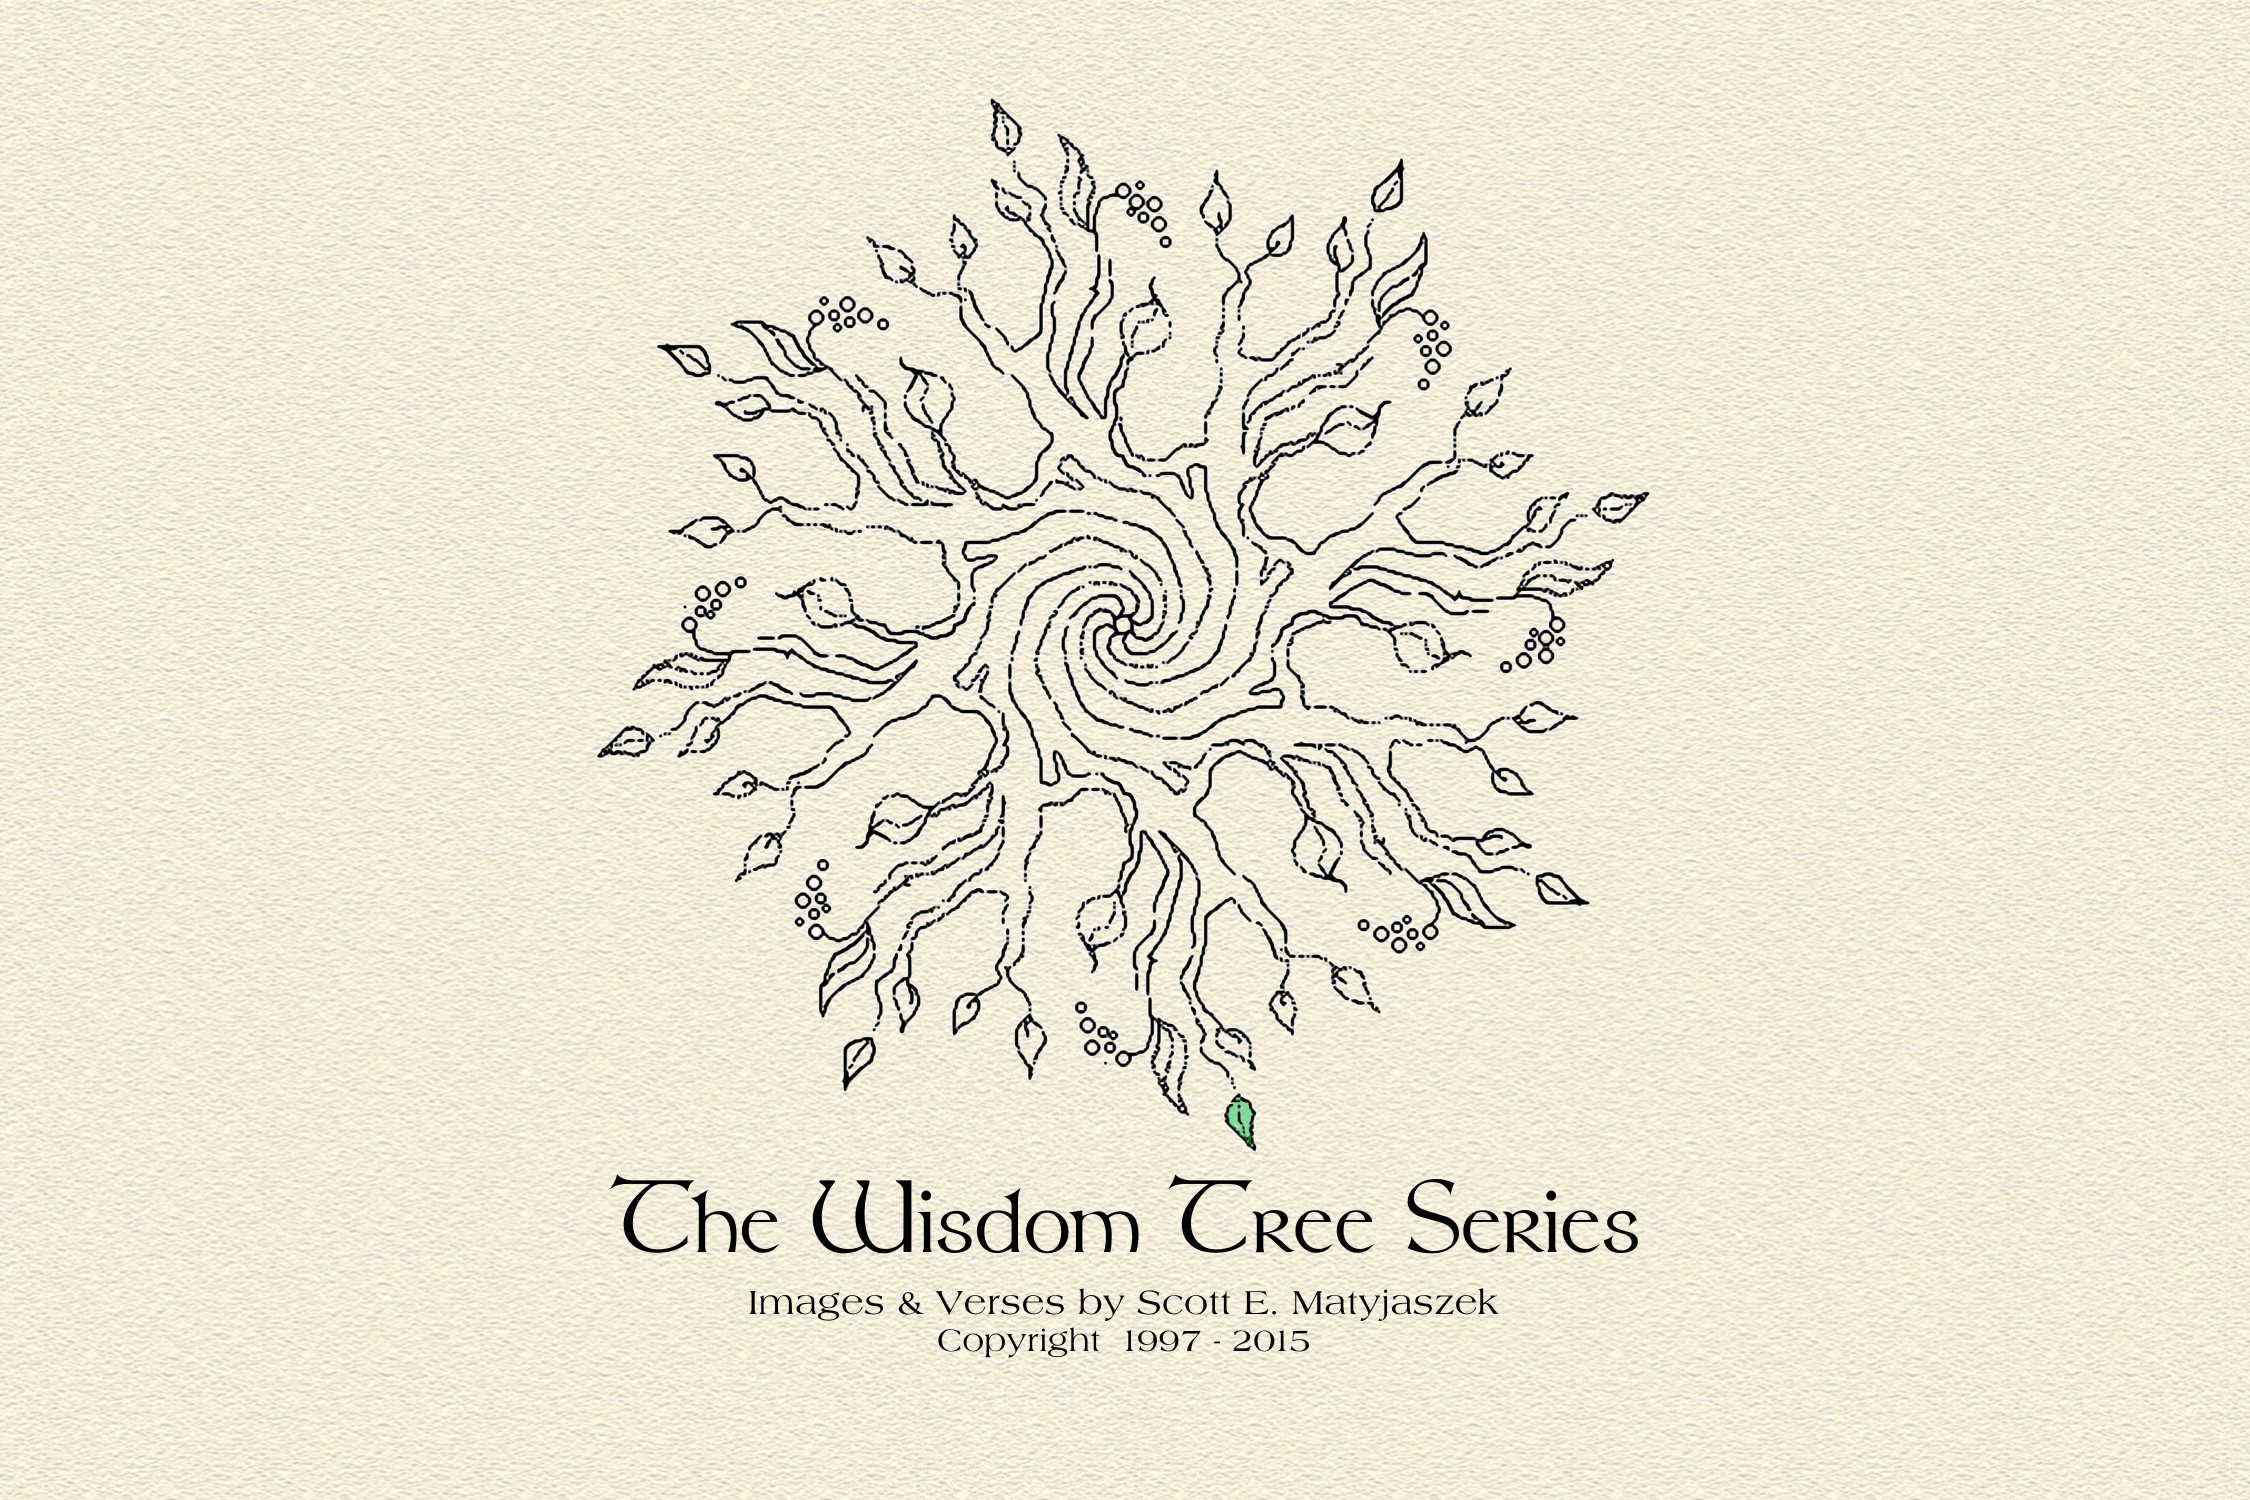 The Wisdom Tree Series Logo